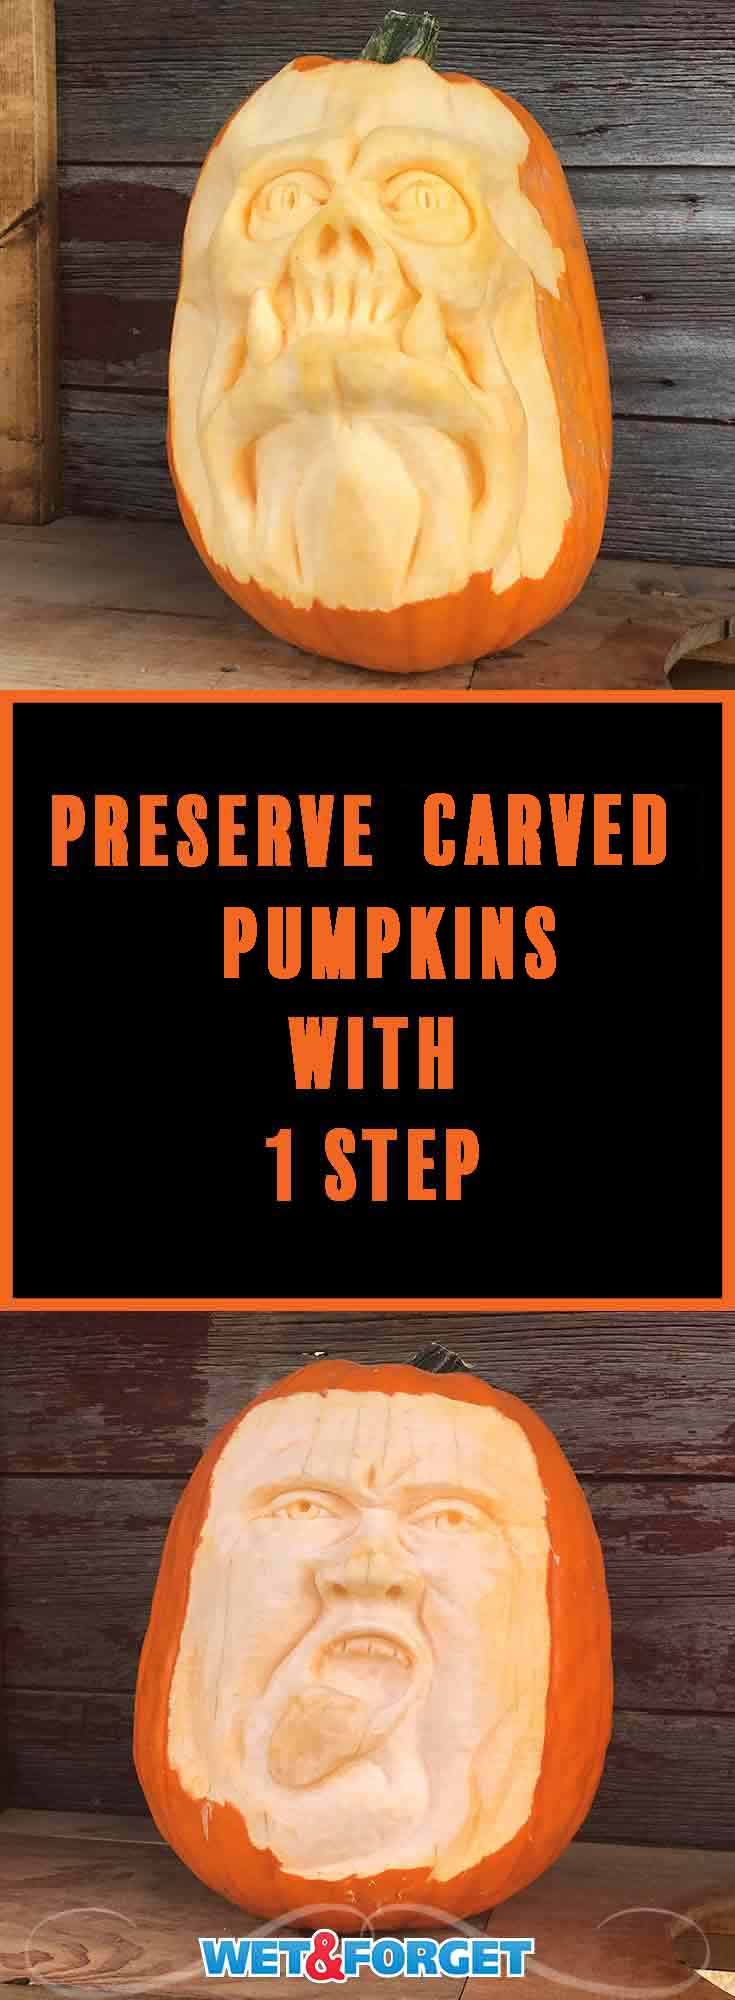 Make your pumpkin carving last longer by preserving it with this easy 1-step process!